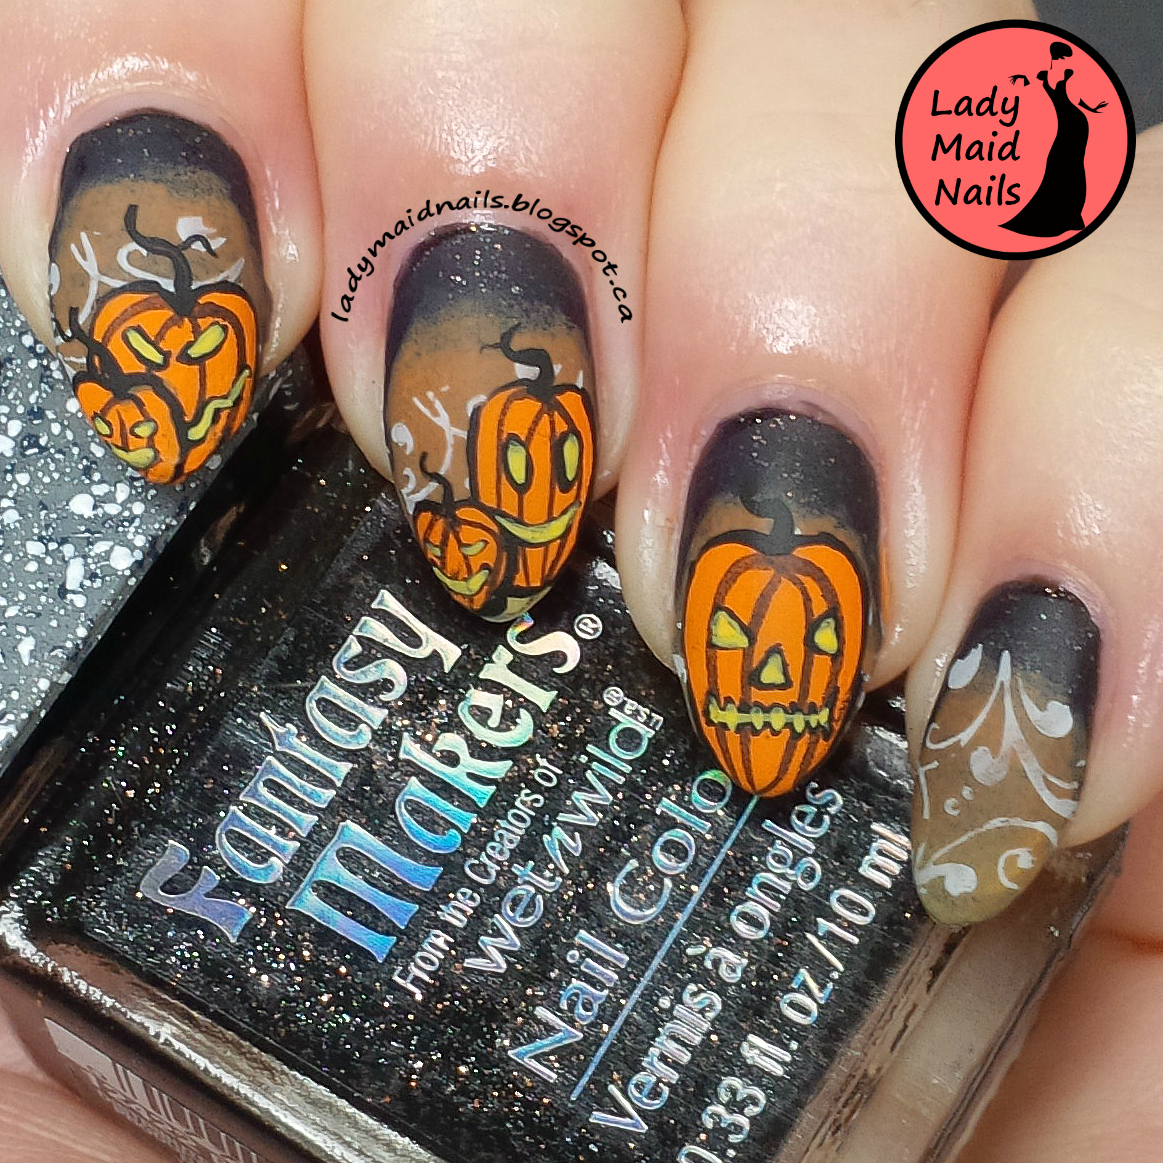 Lady Maid Nails: Jack-o-lantern Nail Art